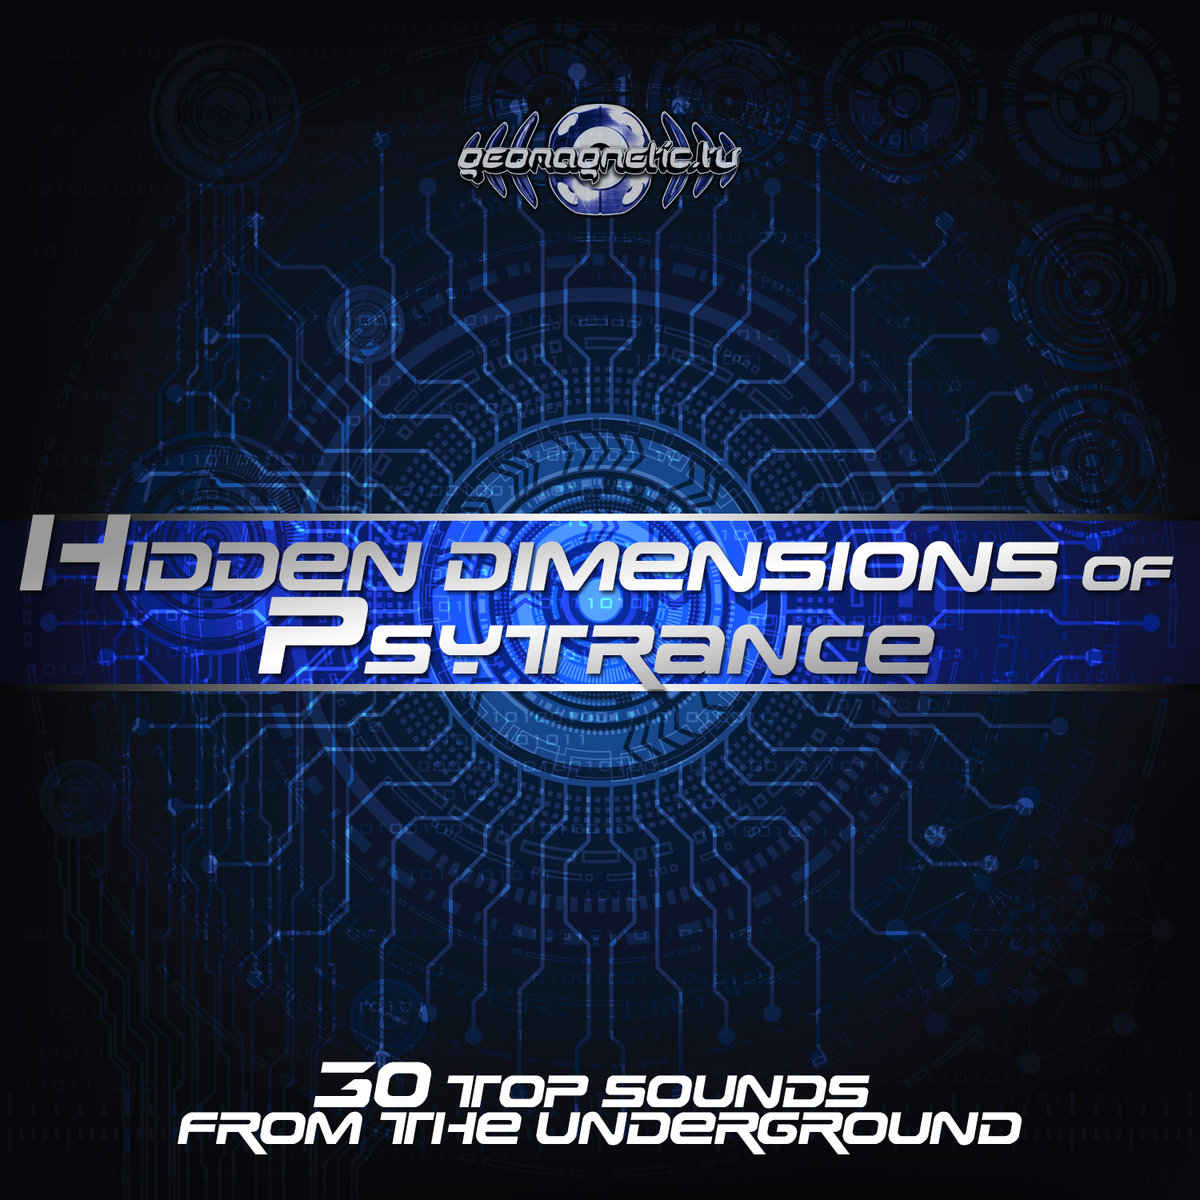 InnerShade - Interception @ 'Various Artists - Hidden Dimensions of Psytrance (30 Top Sounds From The Underground)' album (electronic, goa)